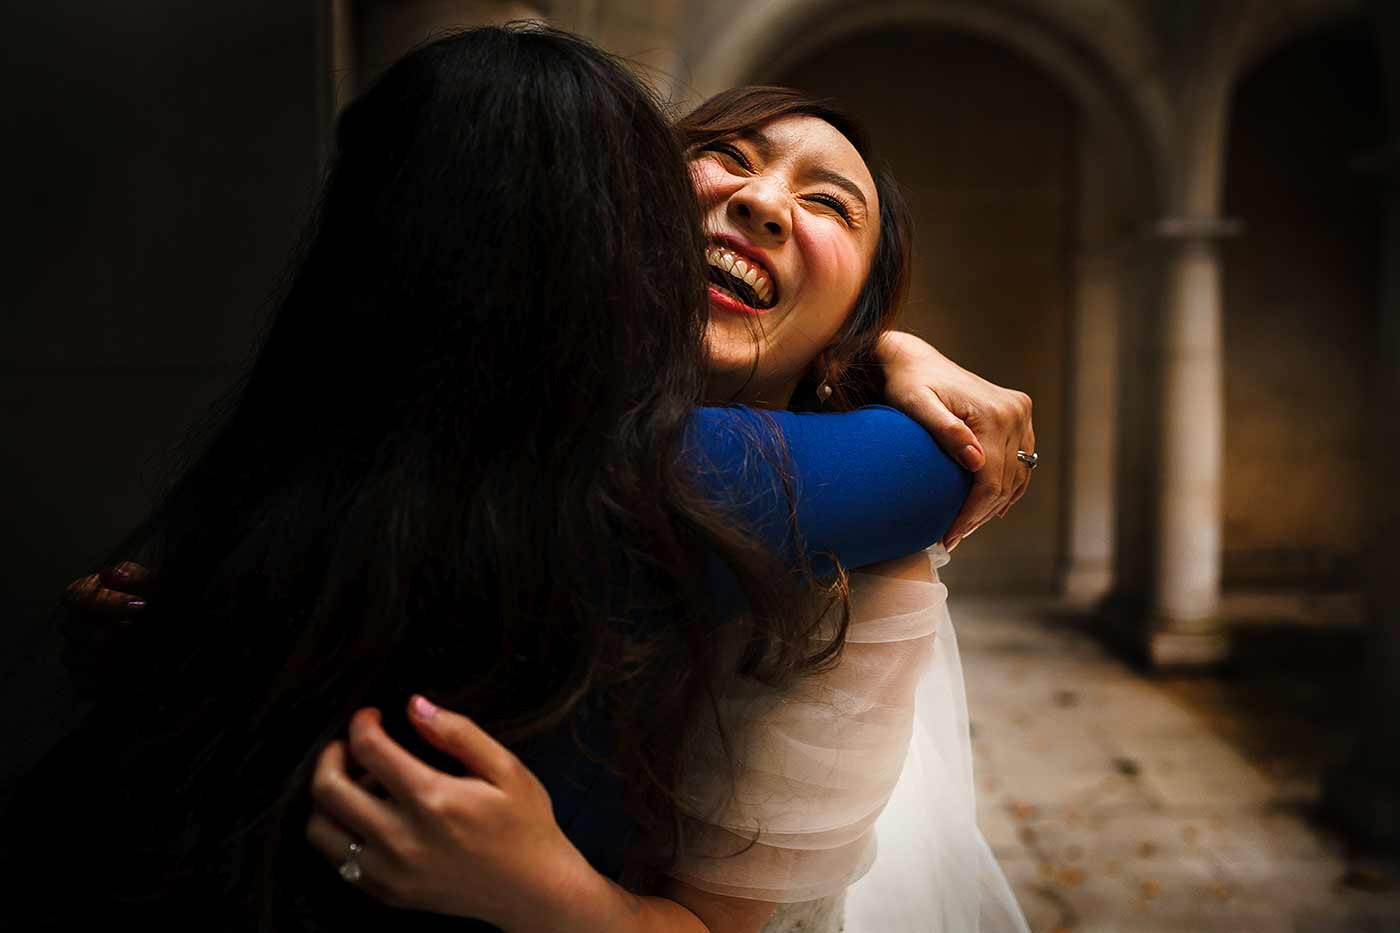 happy emotional moment between bride and best friend